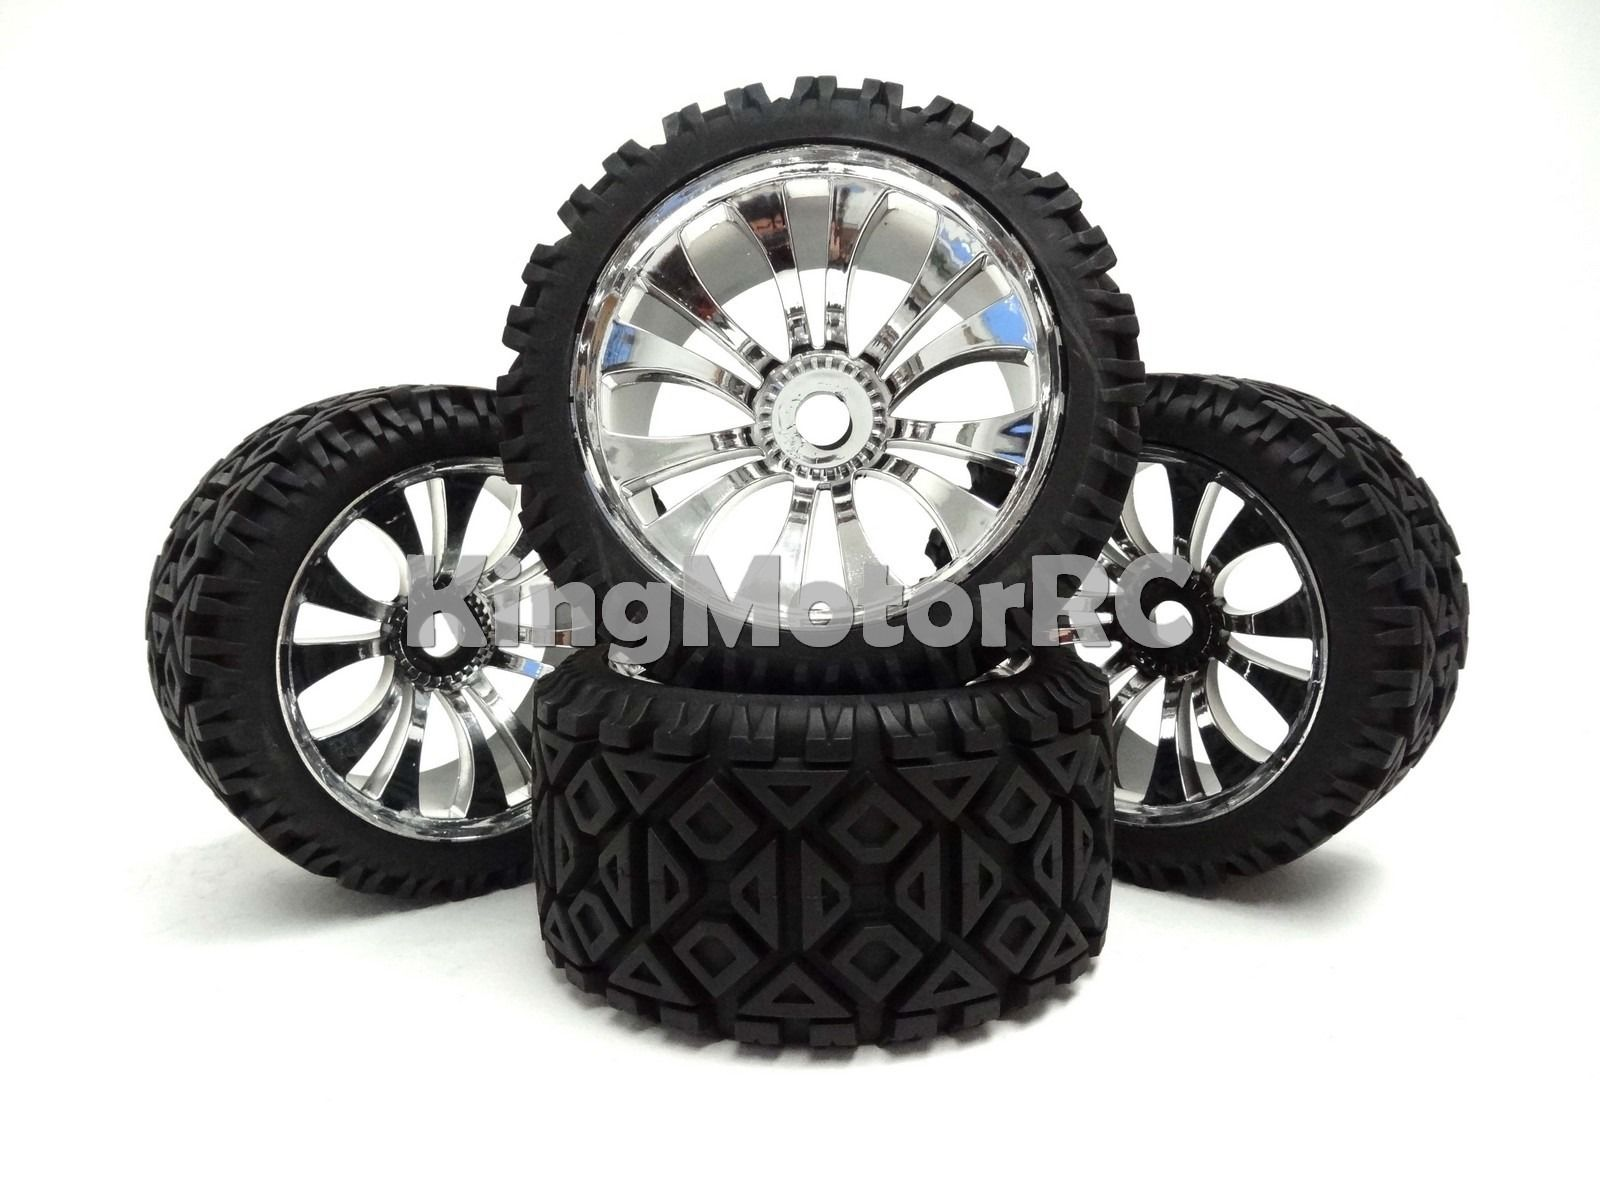 New King Motor T2000 Truck All Terrain Wheels Tires Fit HPI Baja 5B 5T 2.0 Rovan free shipping(China (Mainland))